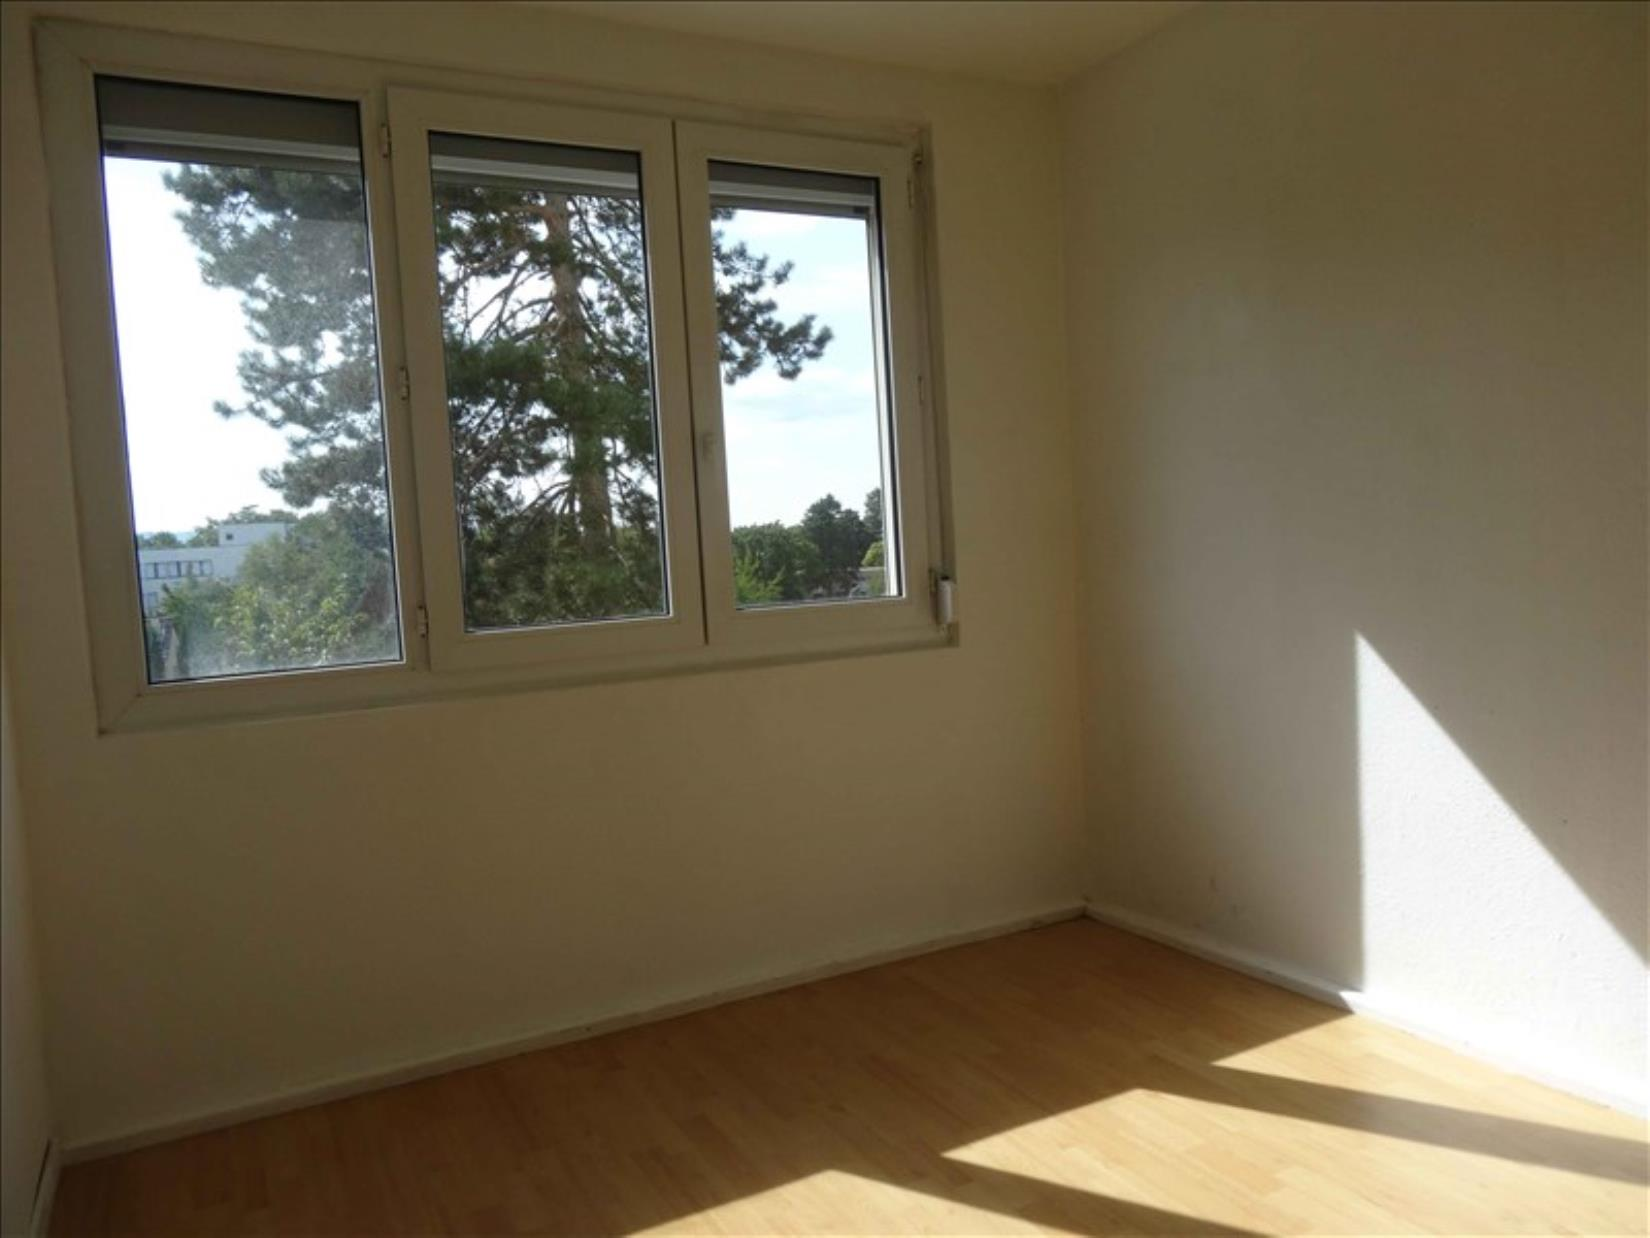 Vente appartement 5 pi ces lyon 05 slci vente for Appartement atypique 69005